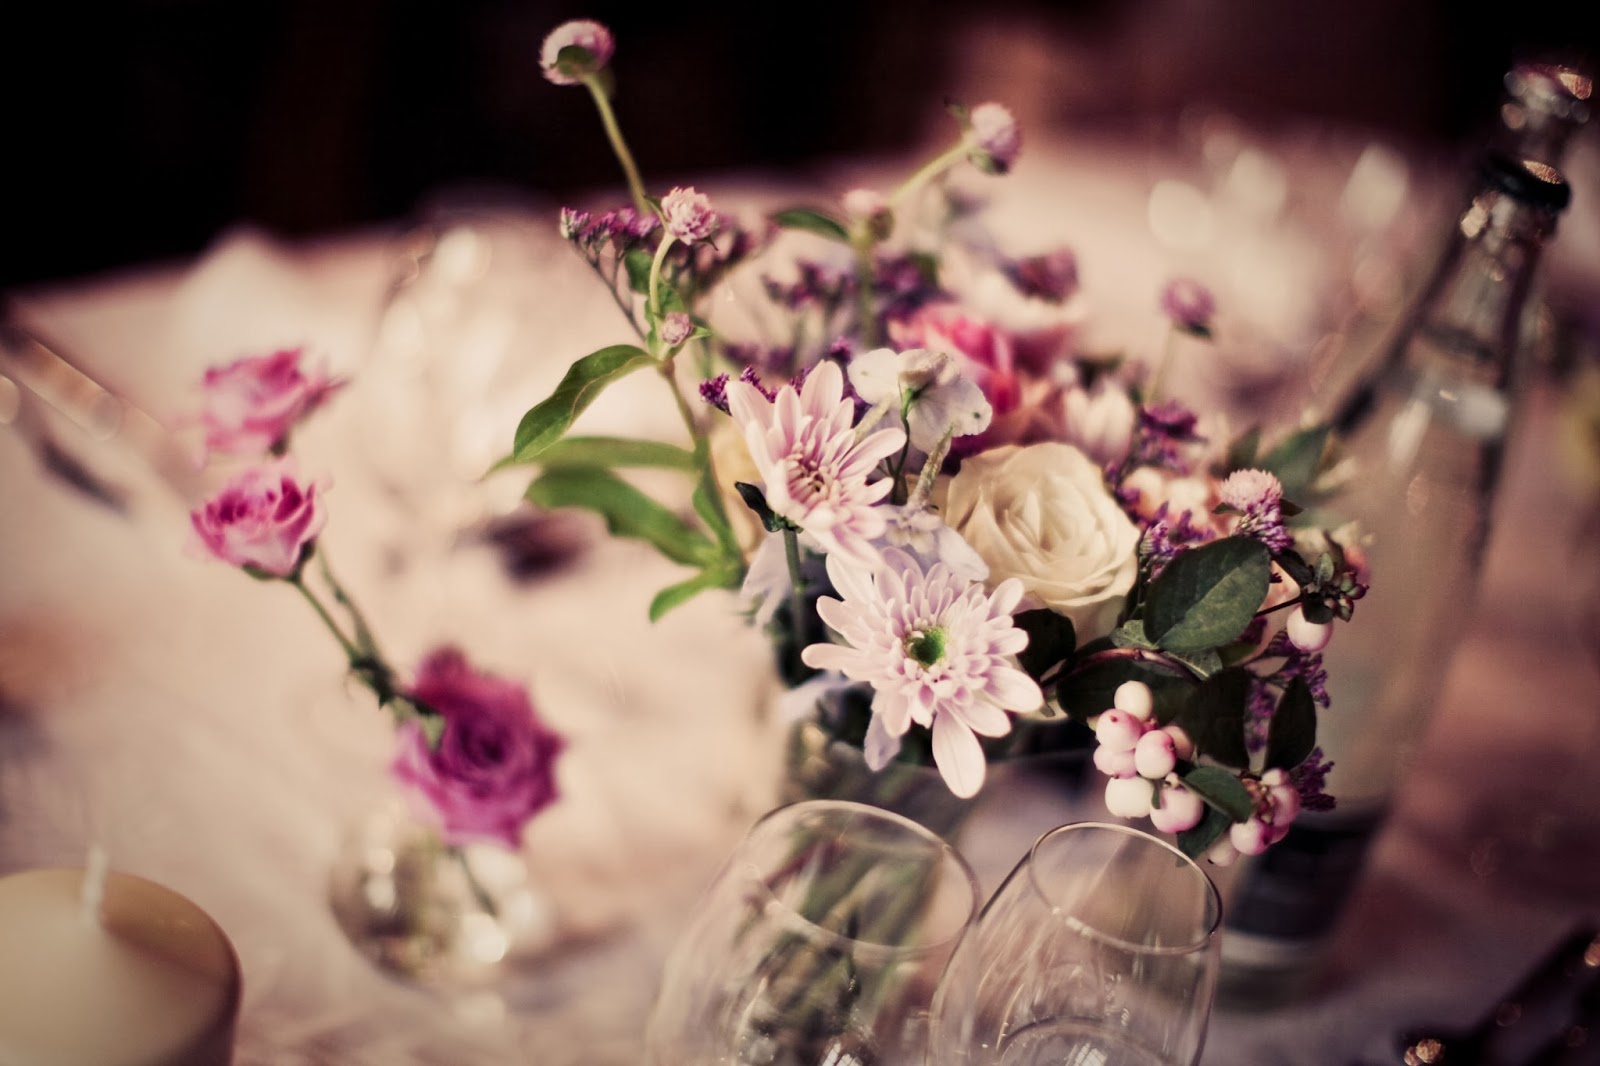 Floral decoration on a wedding table - wedding photographer : Elisabeth Perotin